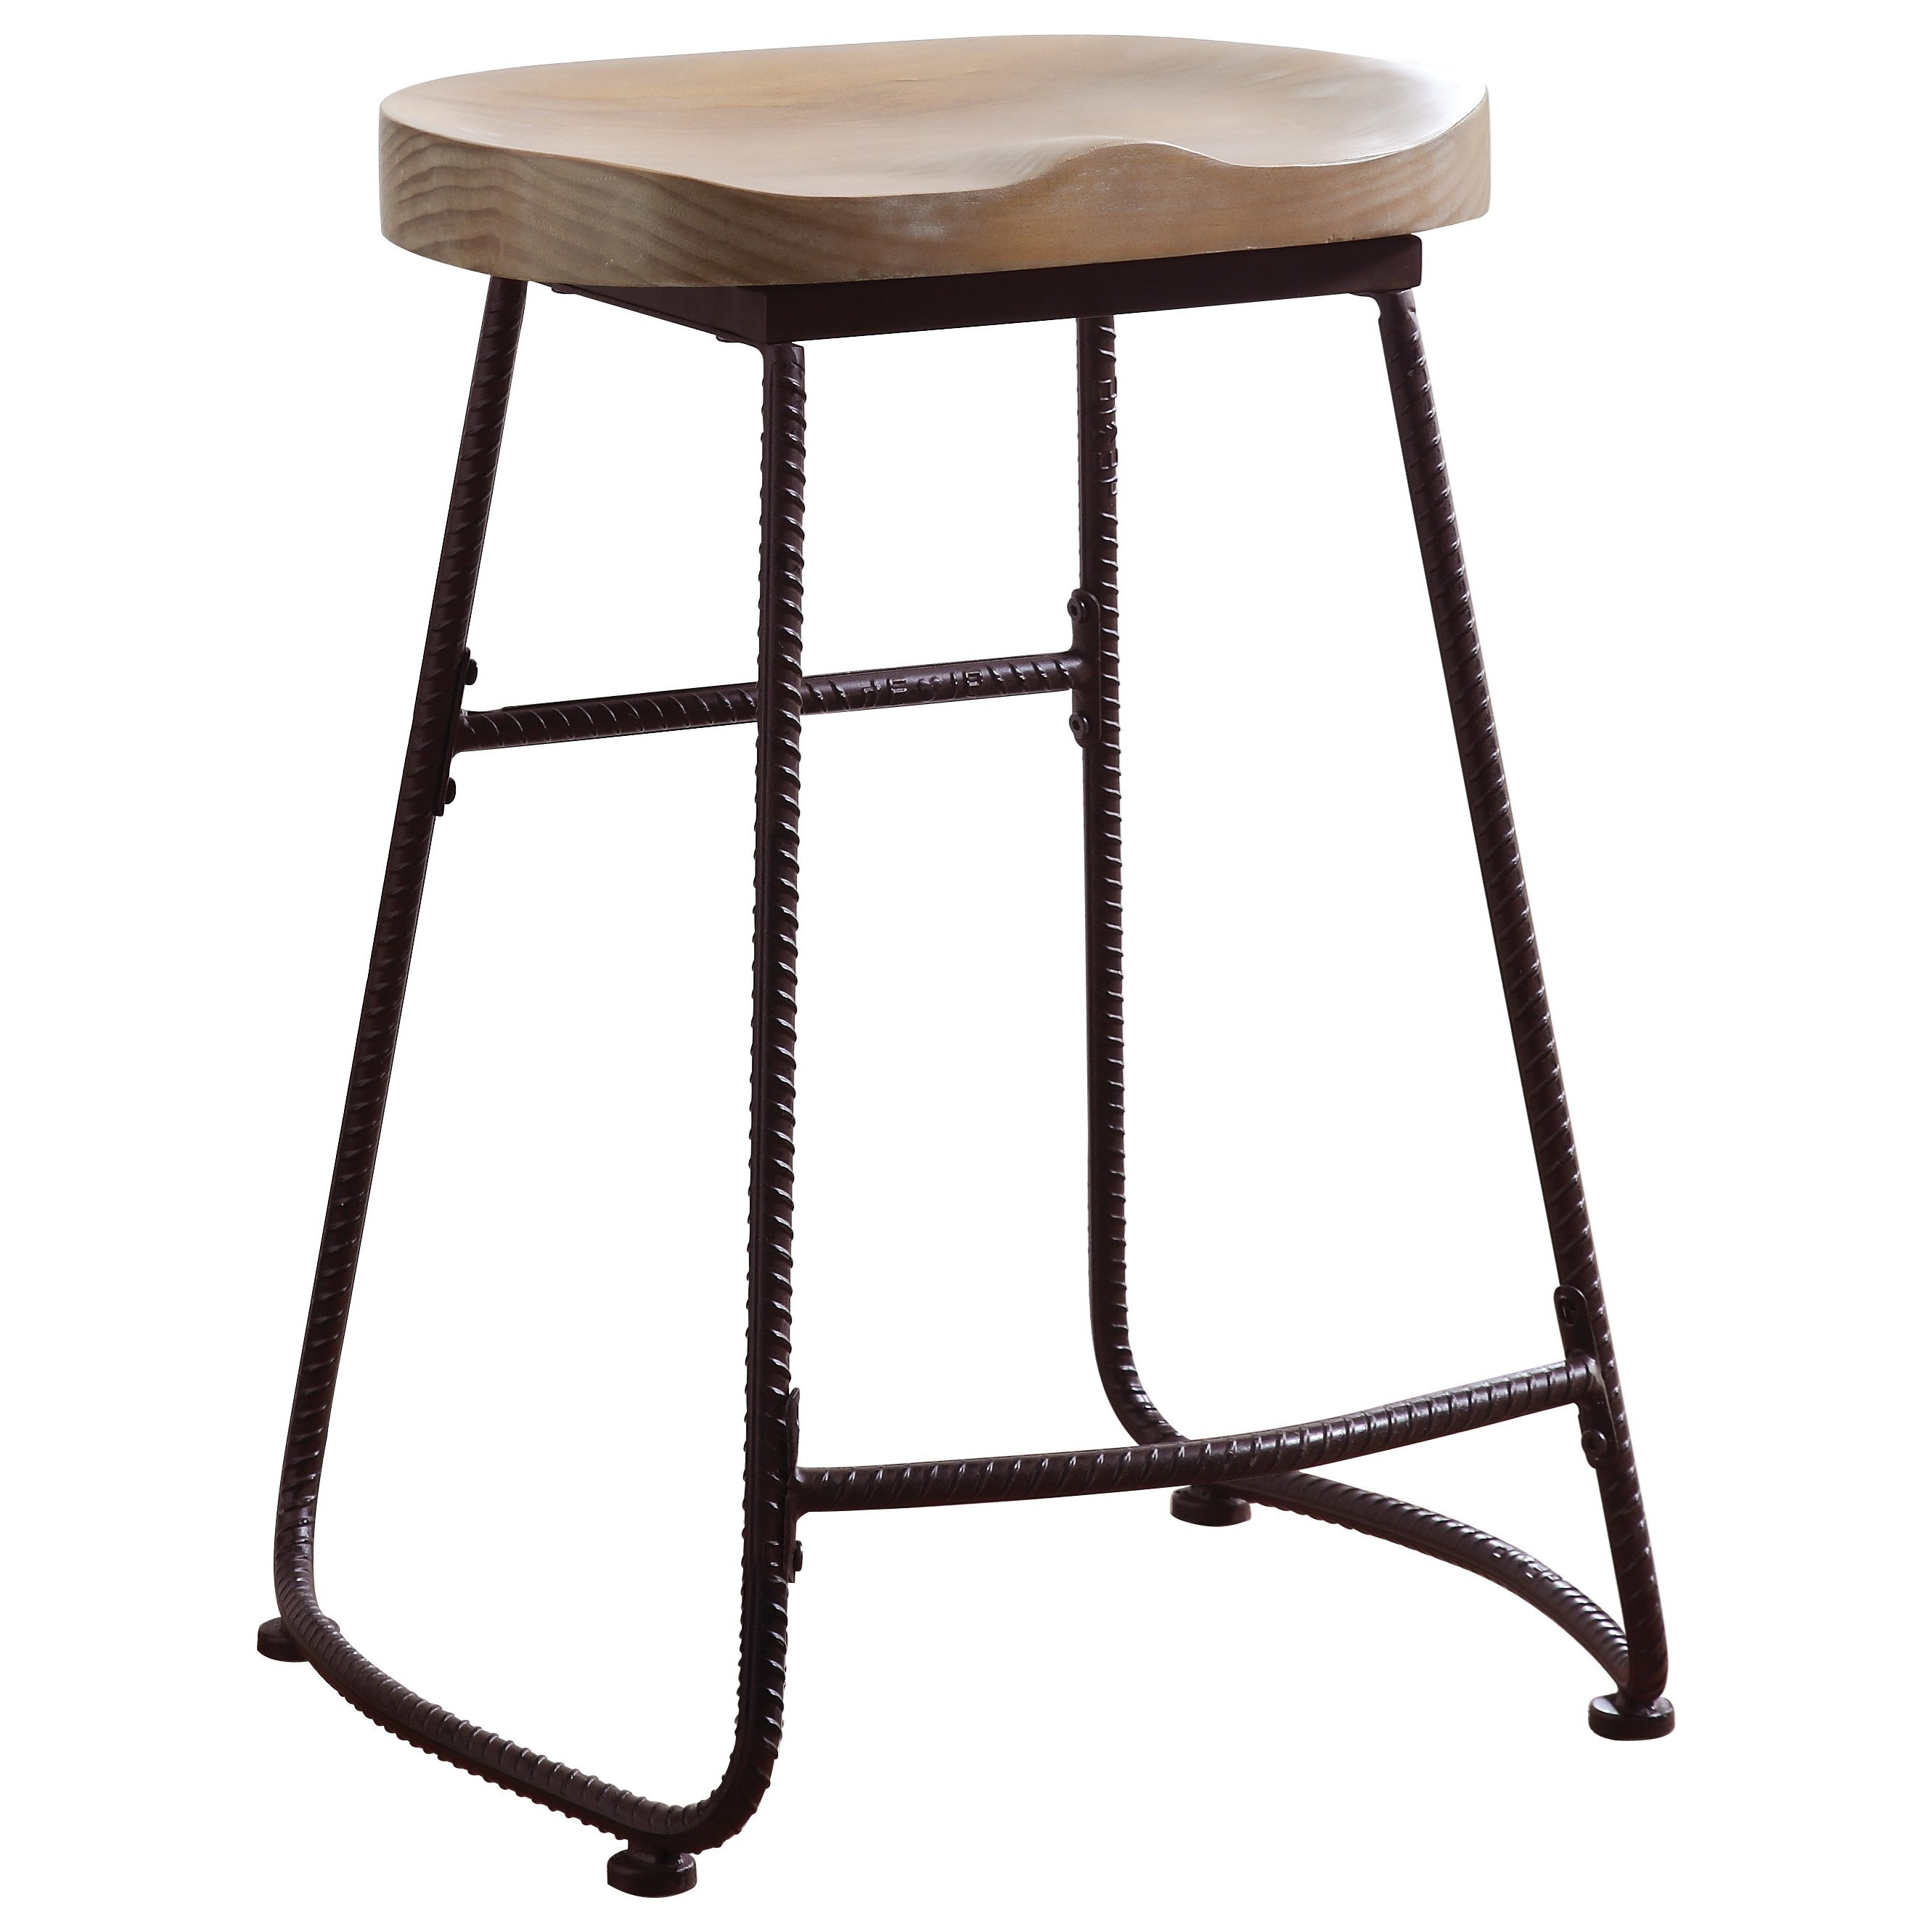 Bar Stool Chair Coaster Dining Chairs And Bar Stools Rustic Counter Height